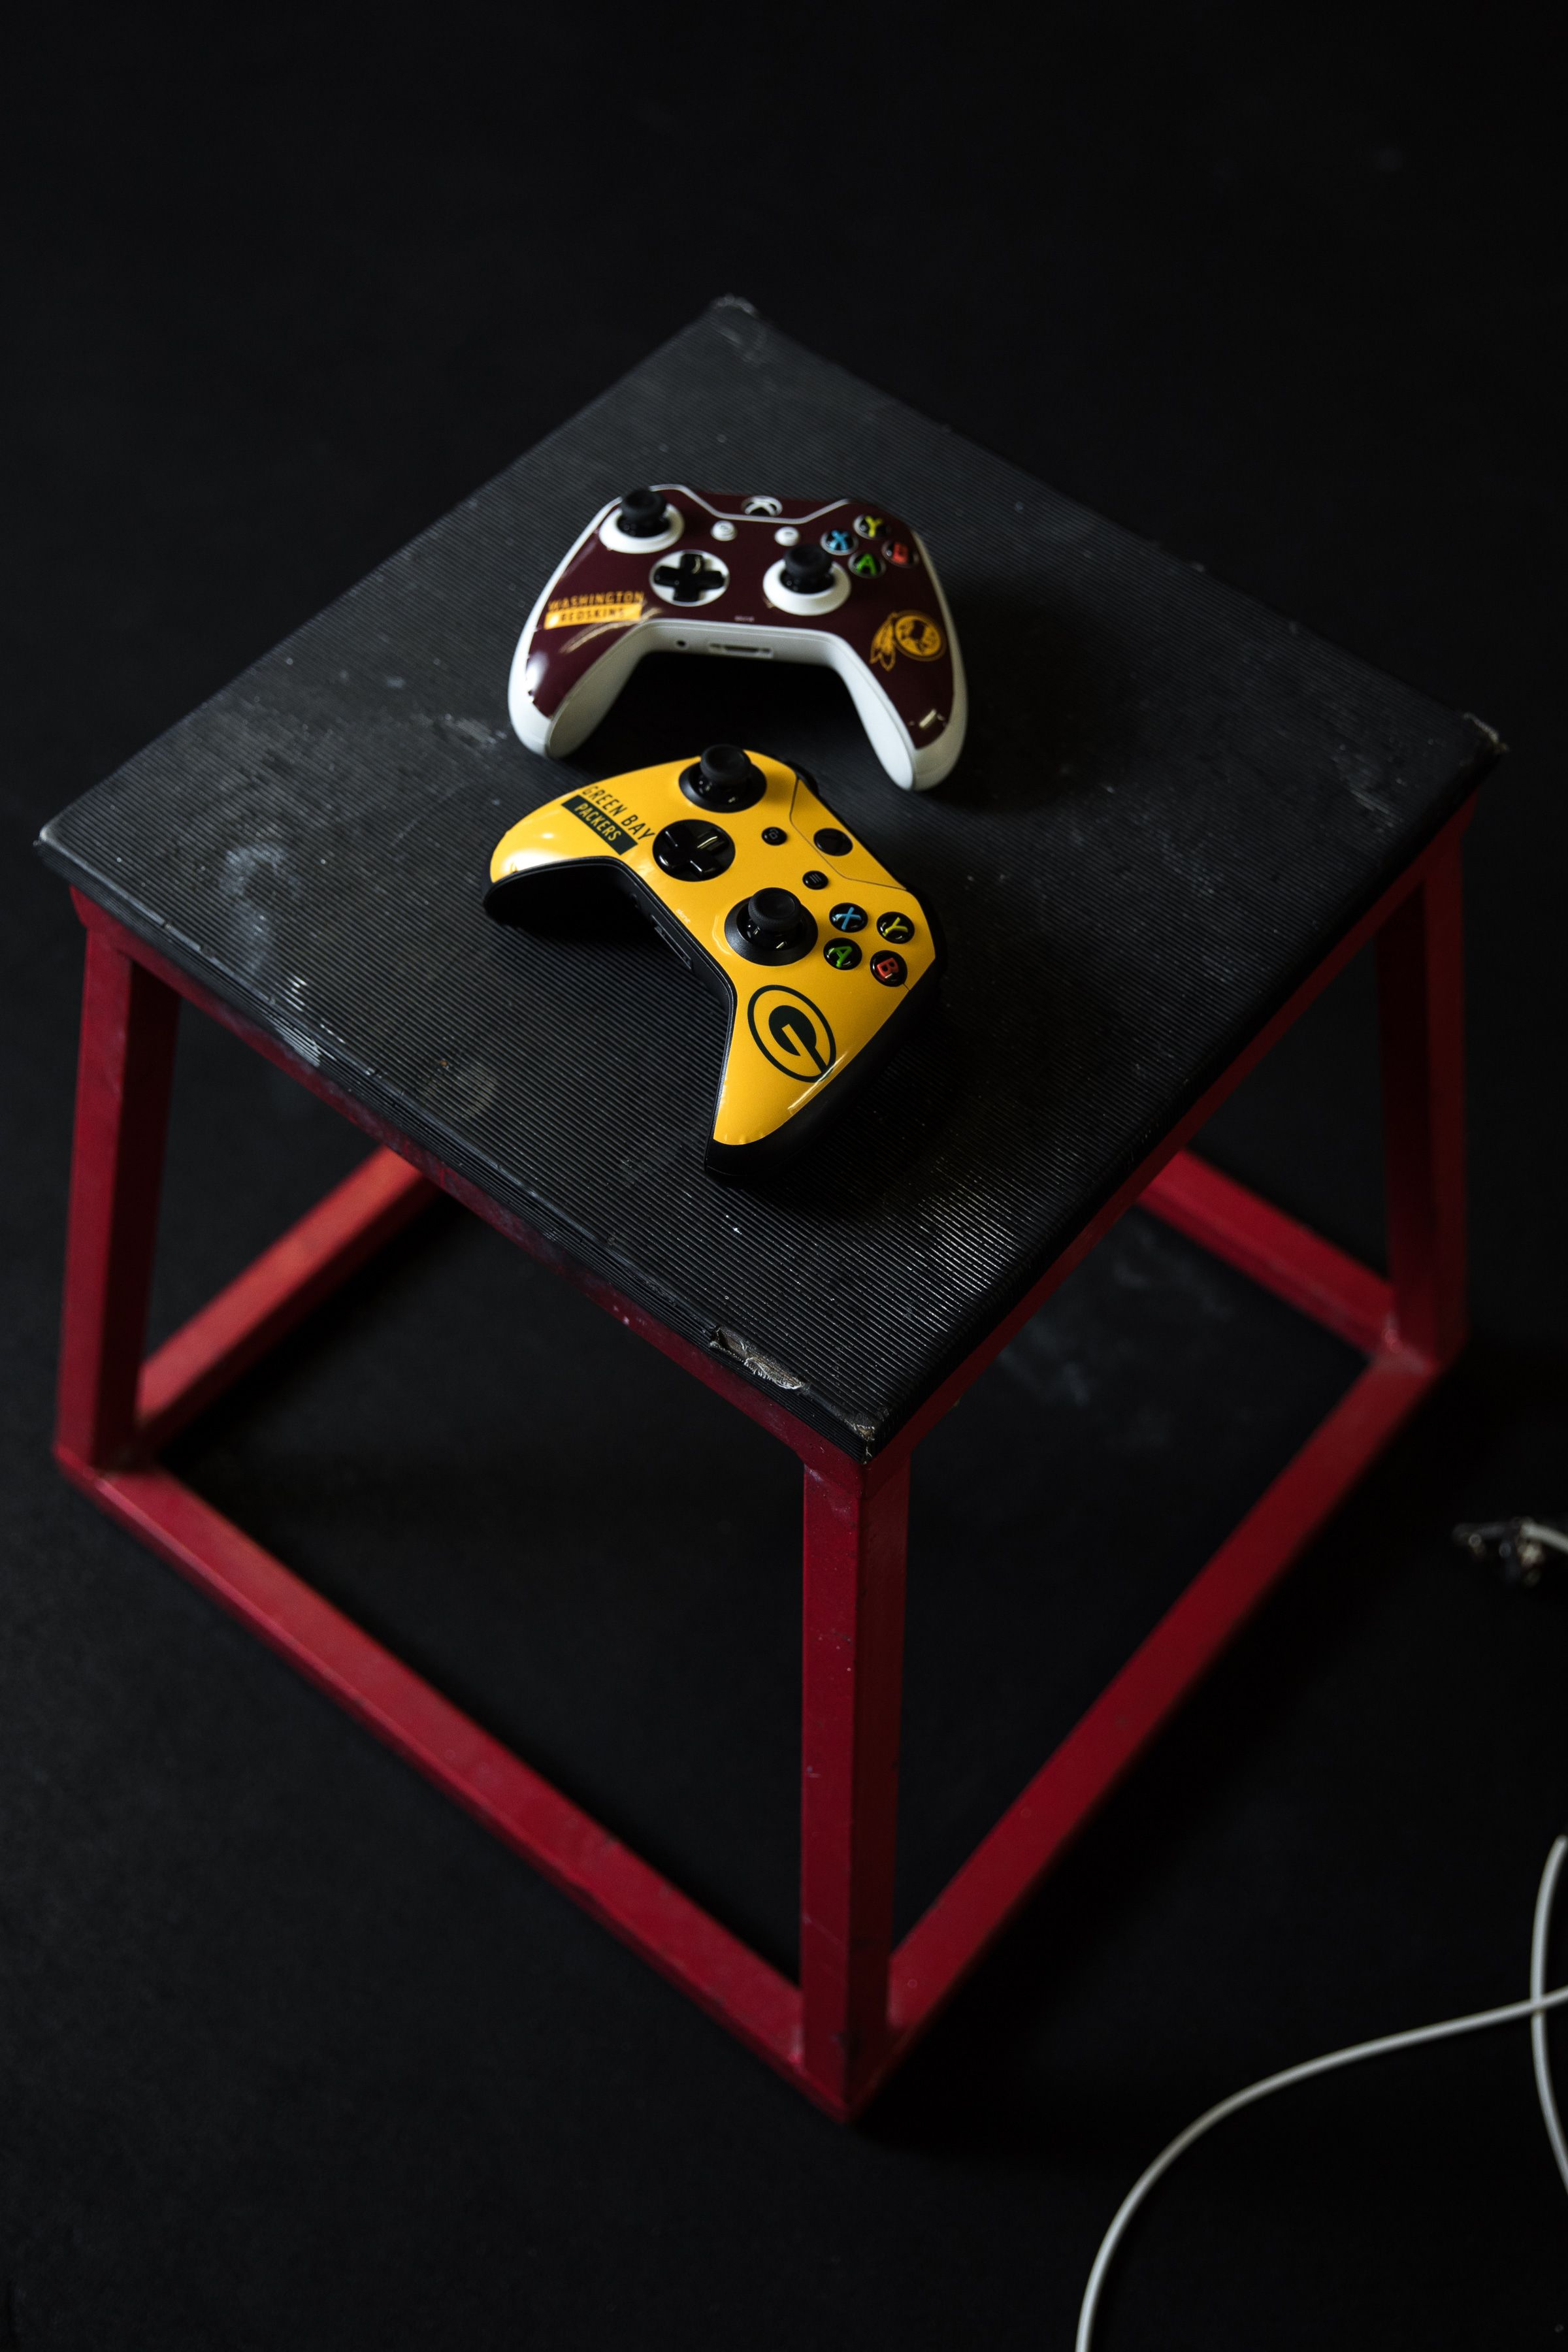 Nfl Performance Series Xbox Gaming Skins By Skinit Explore Nfl Performance Series Designs A Collaboration With Nfl X Skinit Skinit Has Nfl Xbox Games Xbox